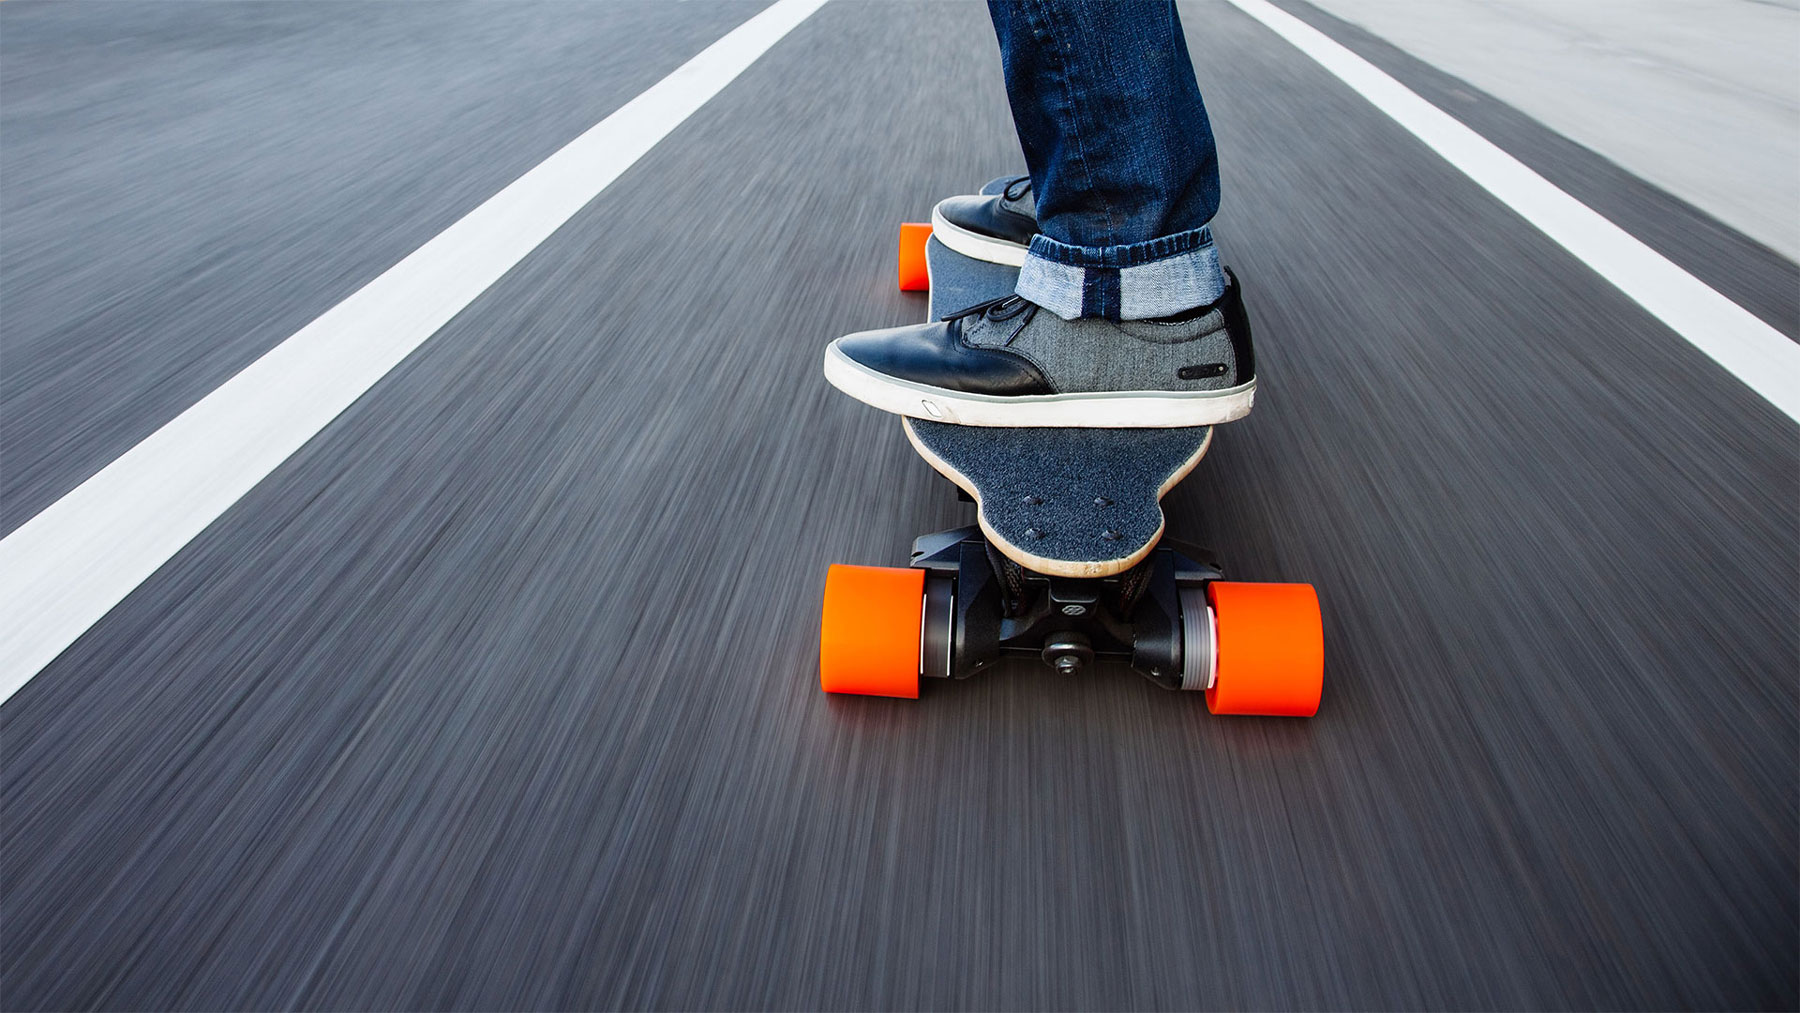 boosted_skateboard